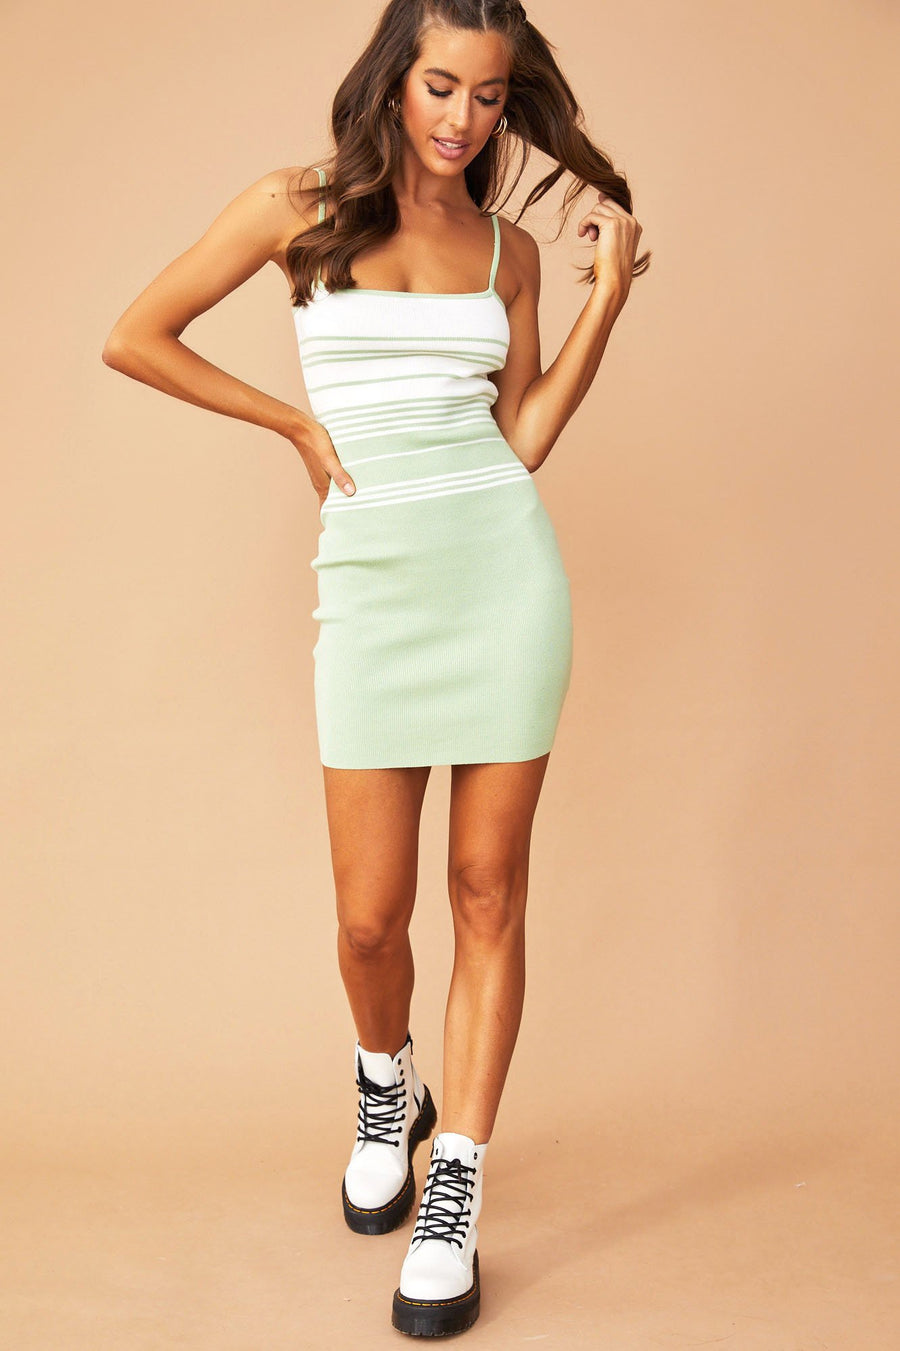 Monique Strap Dress // Lime | Sage and Paige.?id=25780540309673